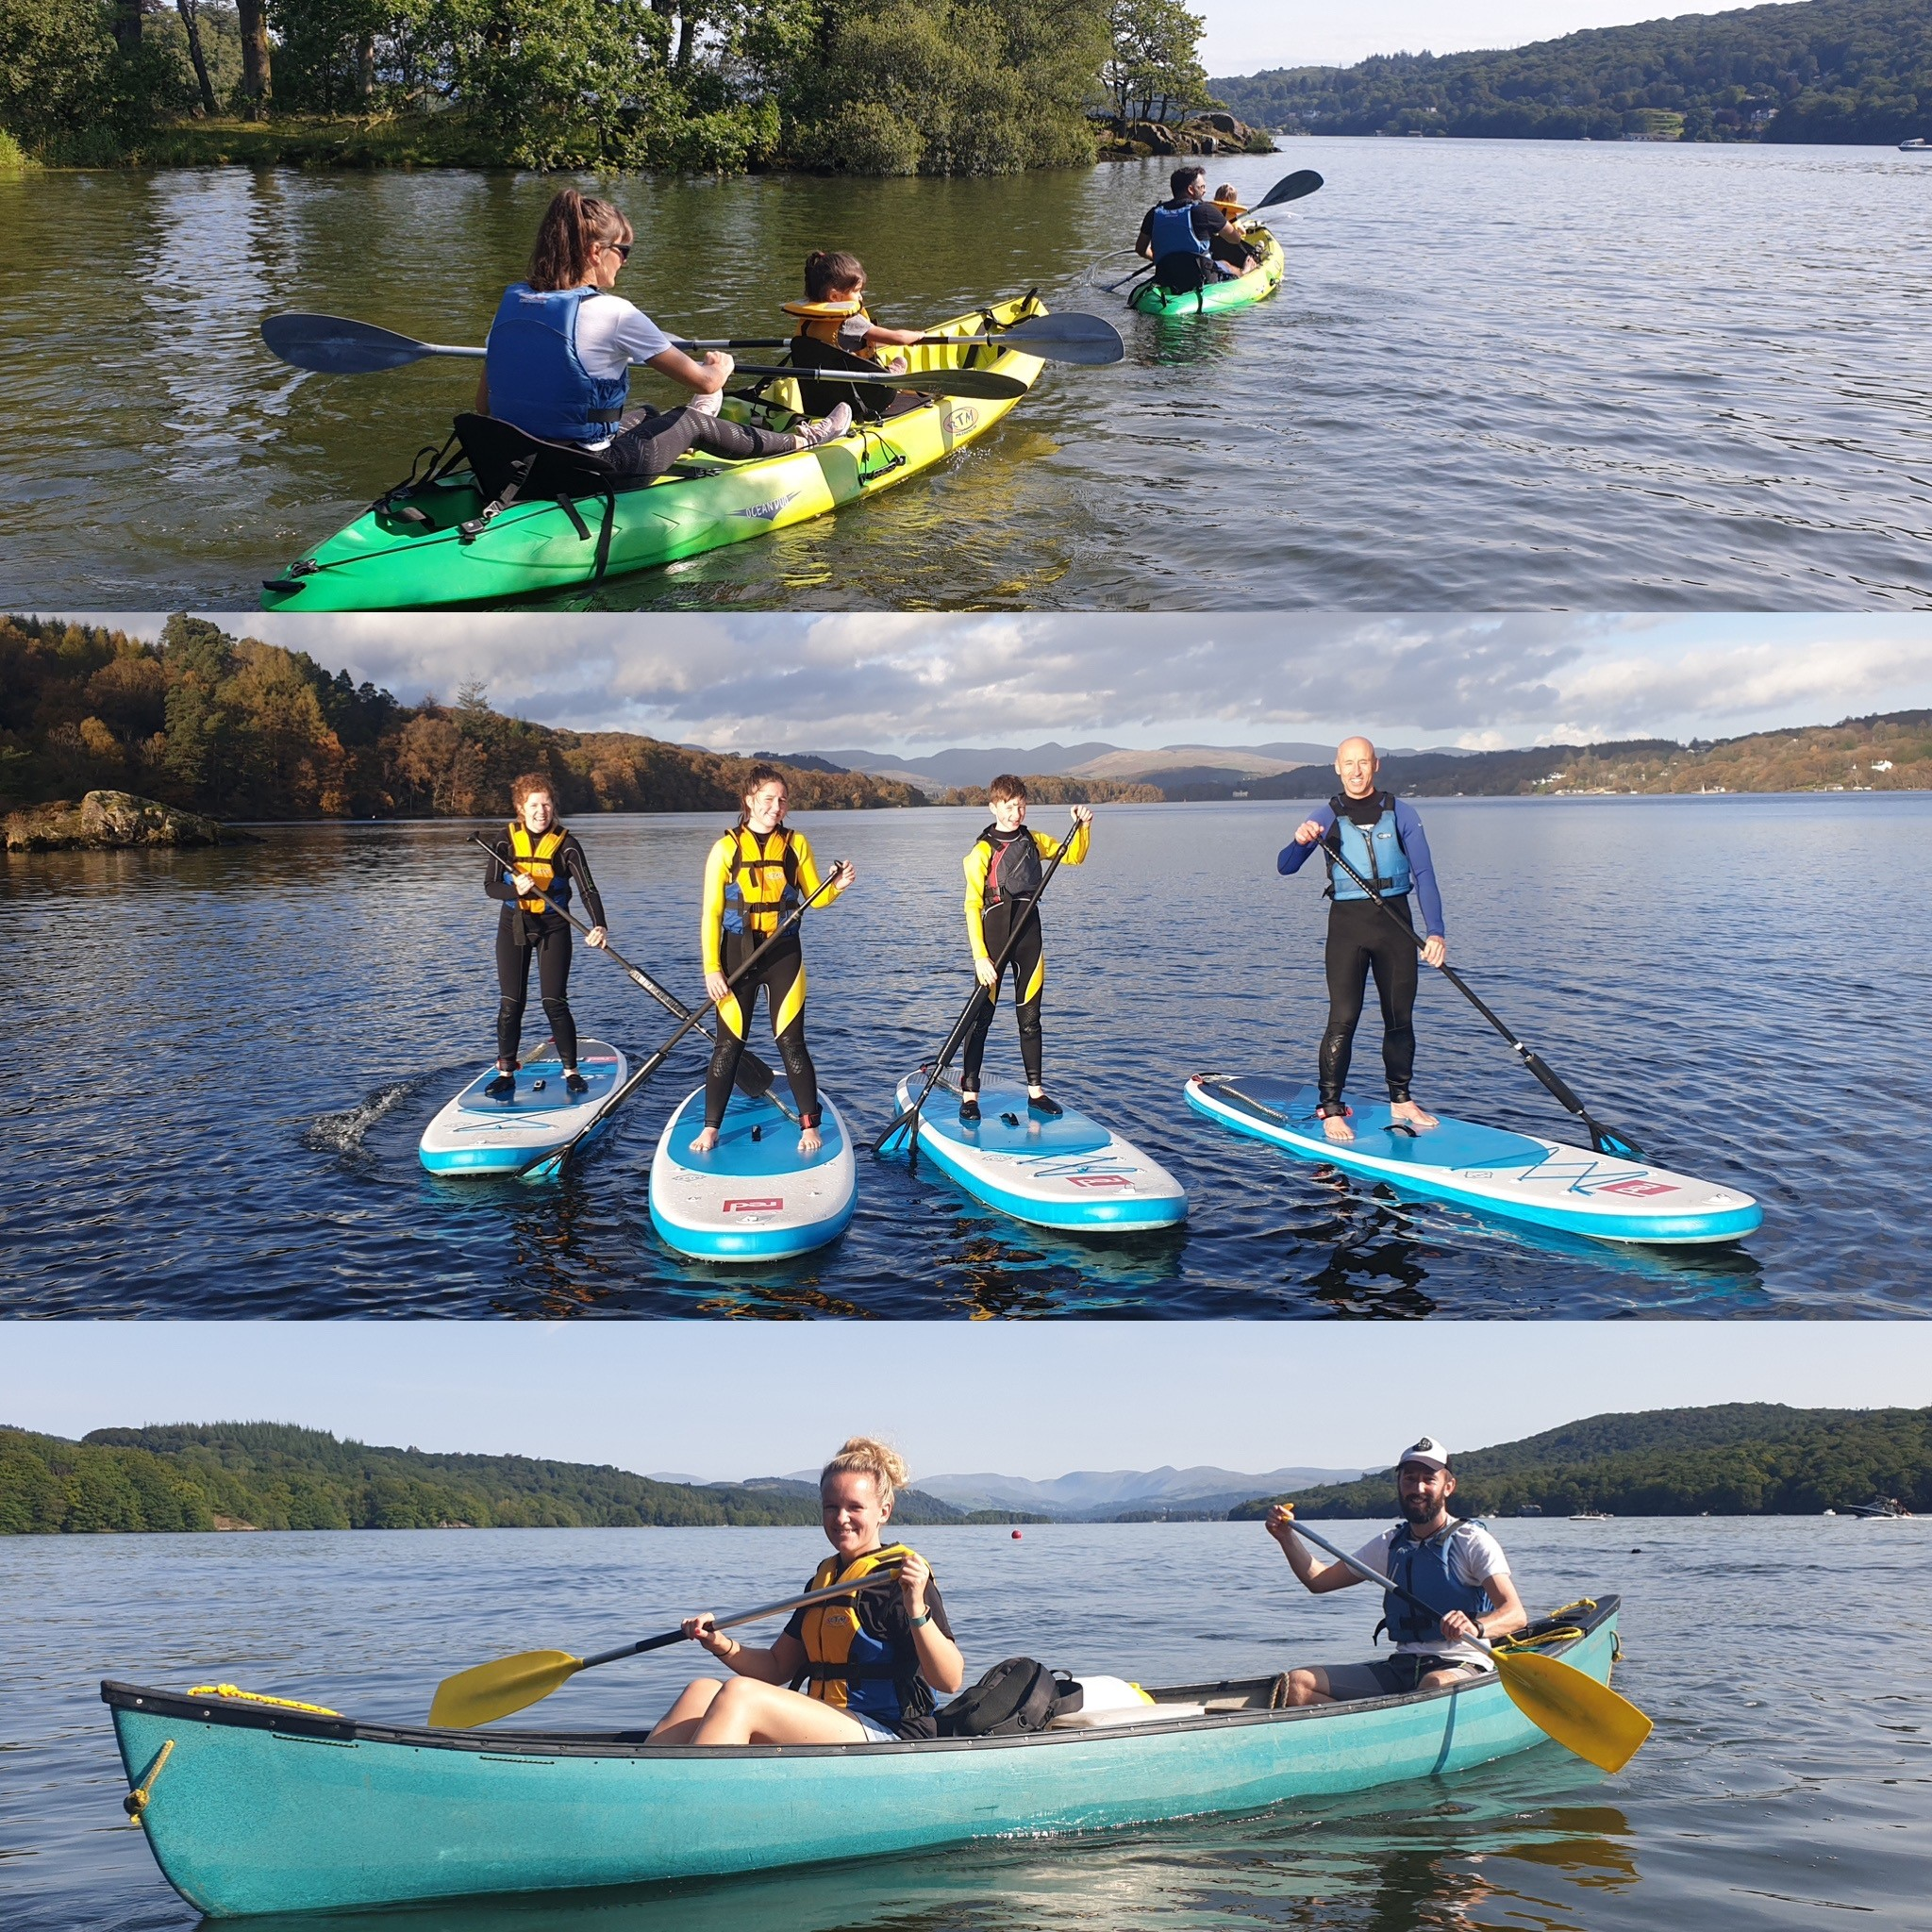 Easter re-opening, discounted watersports fun on Windermere